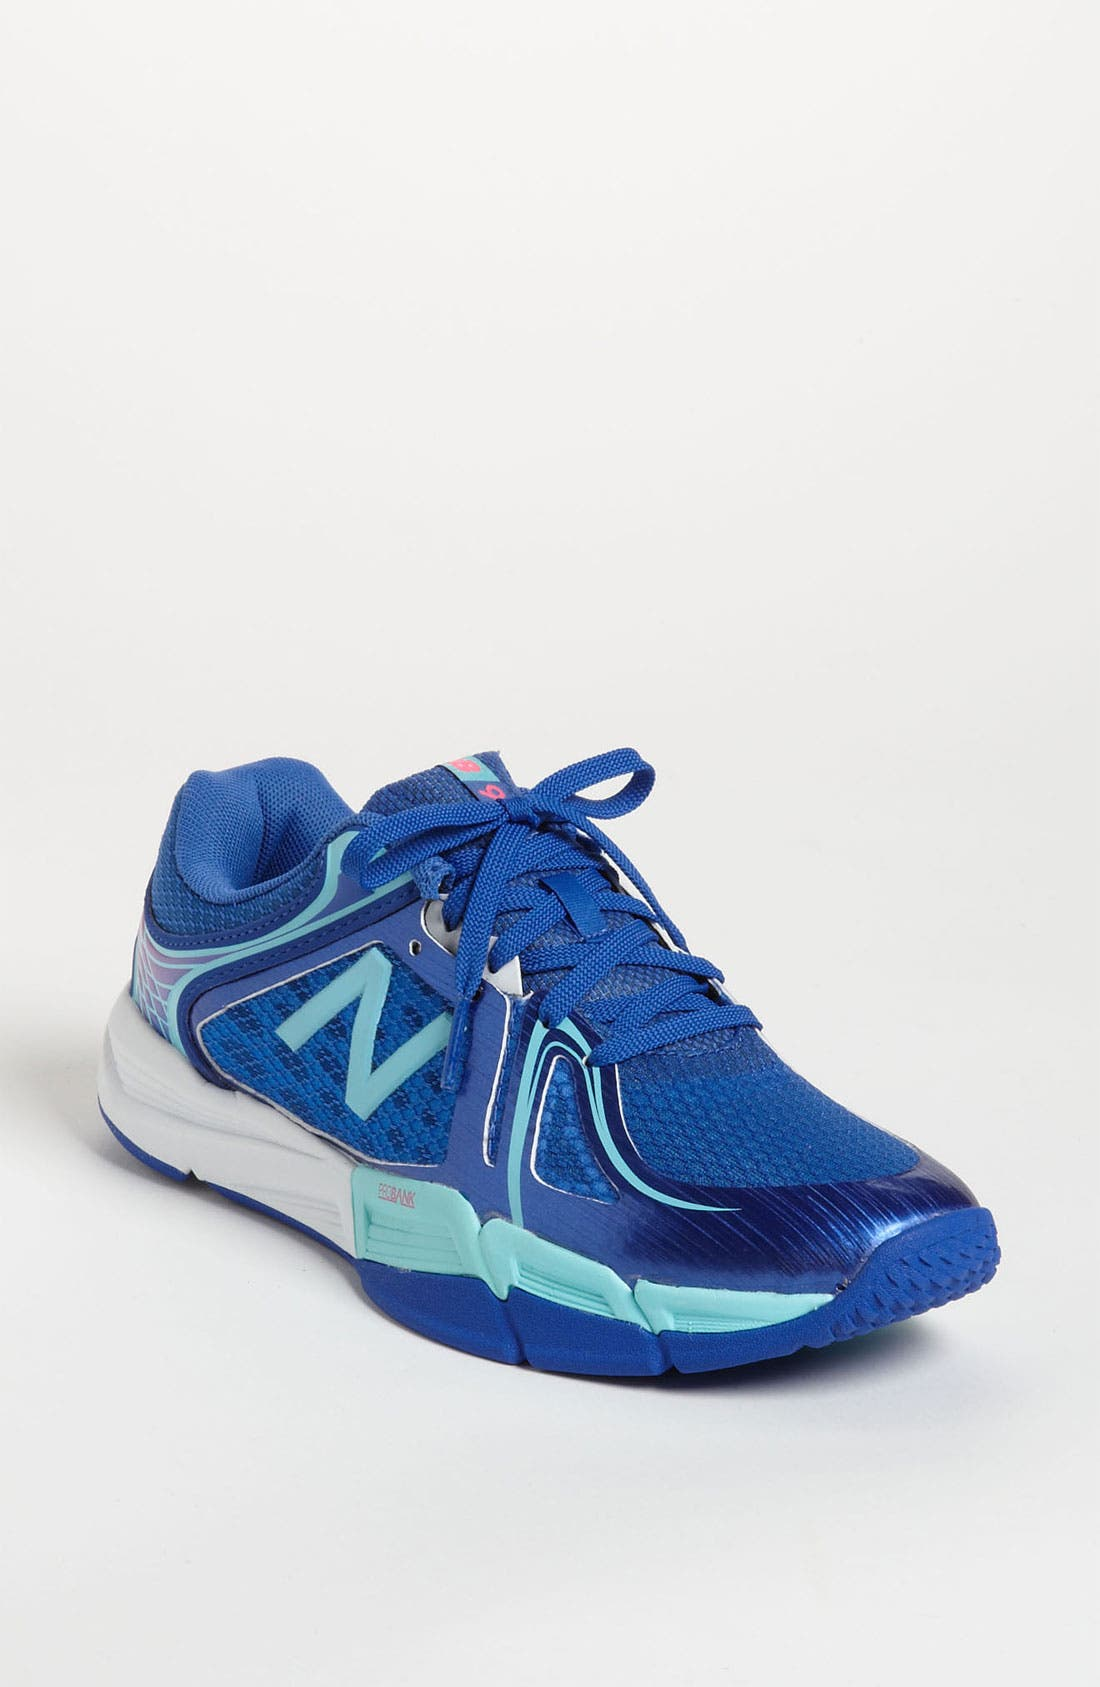 Alternate Image 1 Selected - New Balance 'Probank 997' Training Shoe